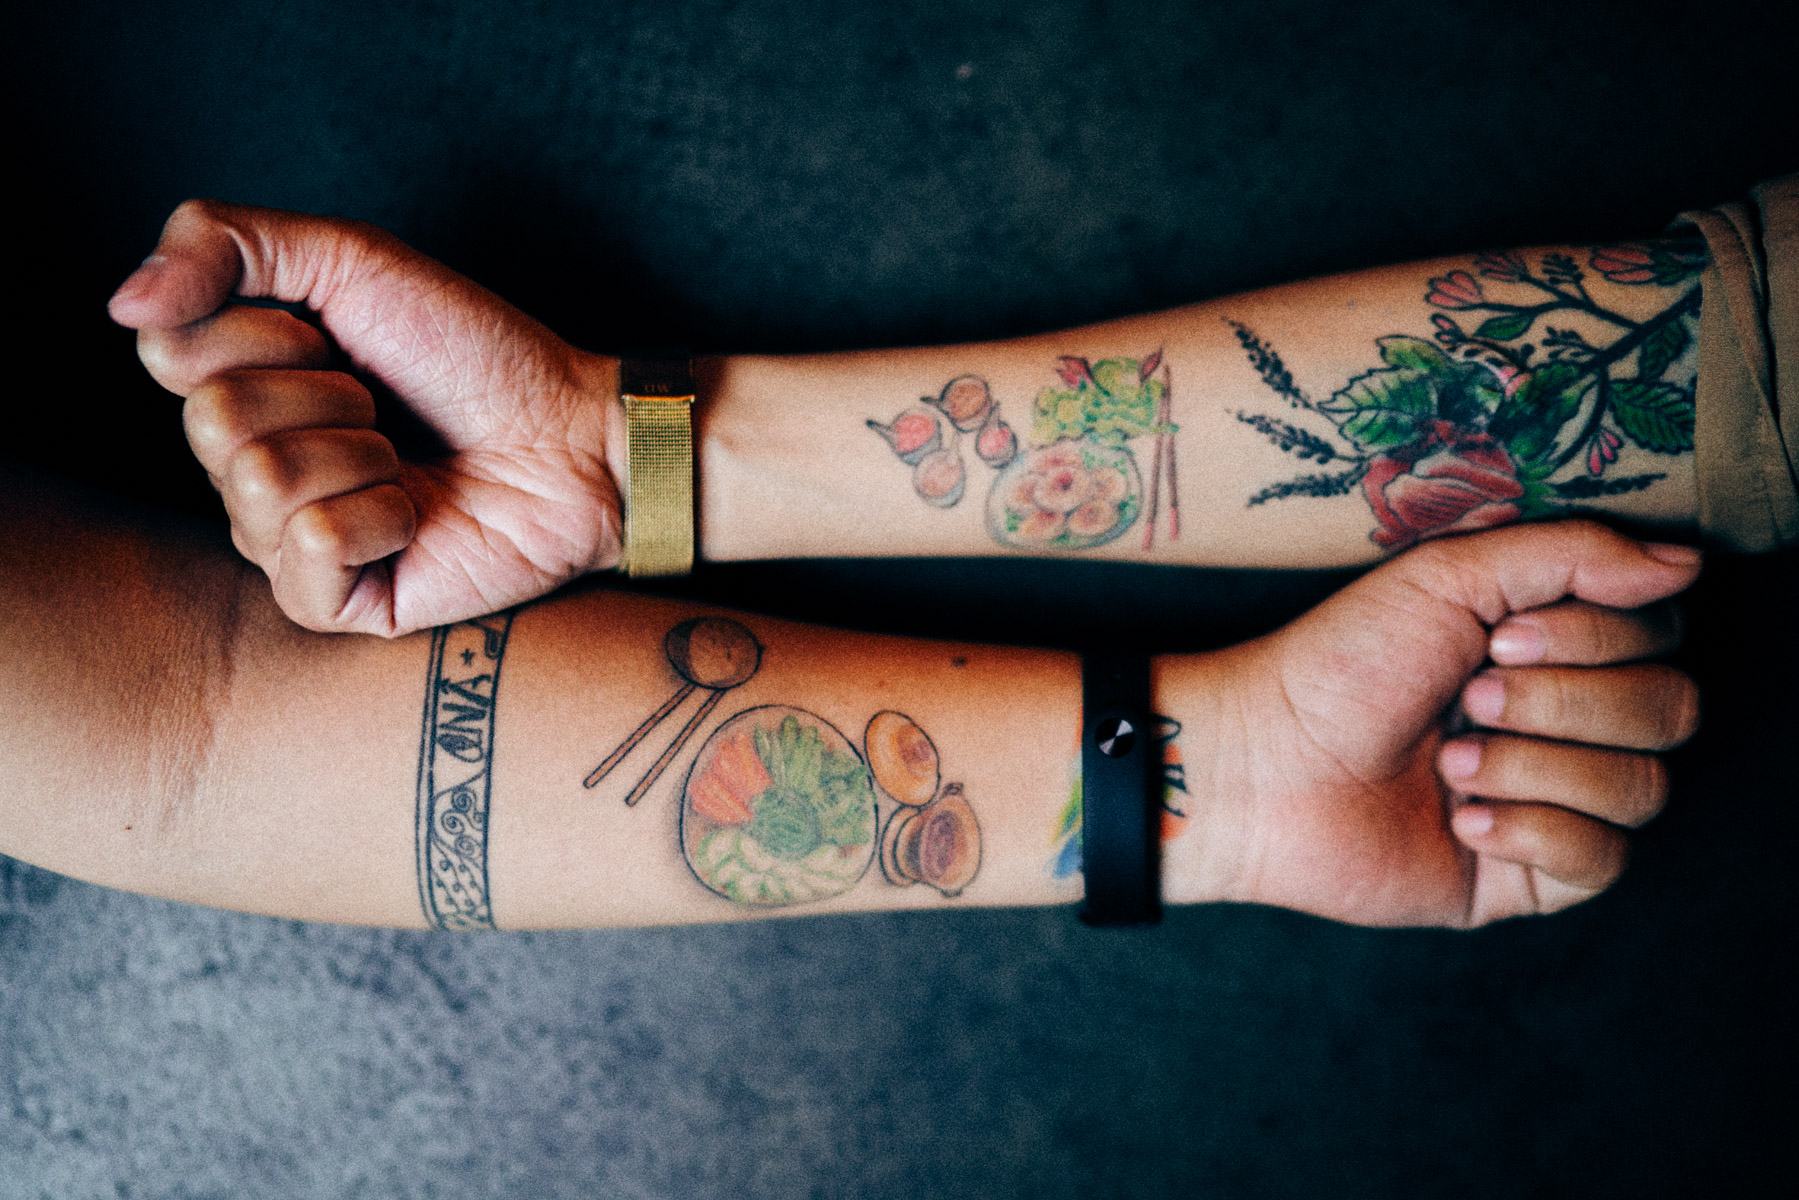 Two girlfriends with matching tattoos of their favorite Vietnamese food.